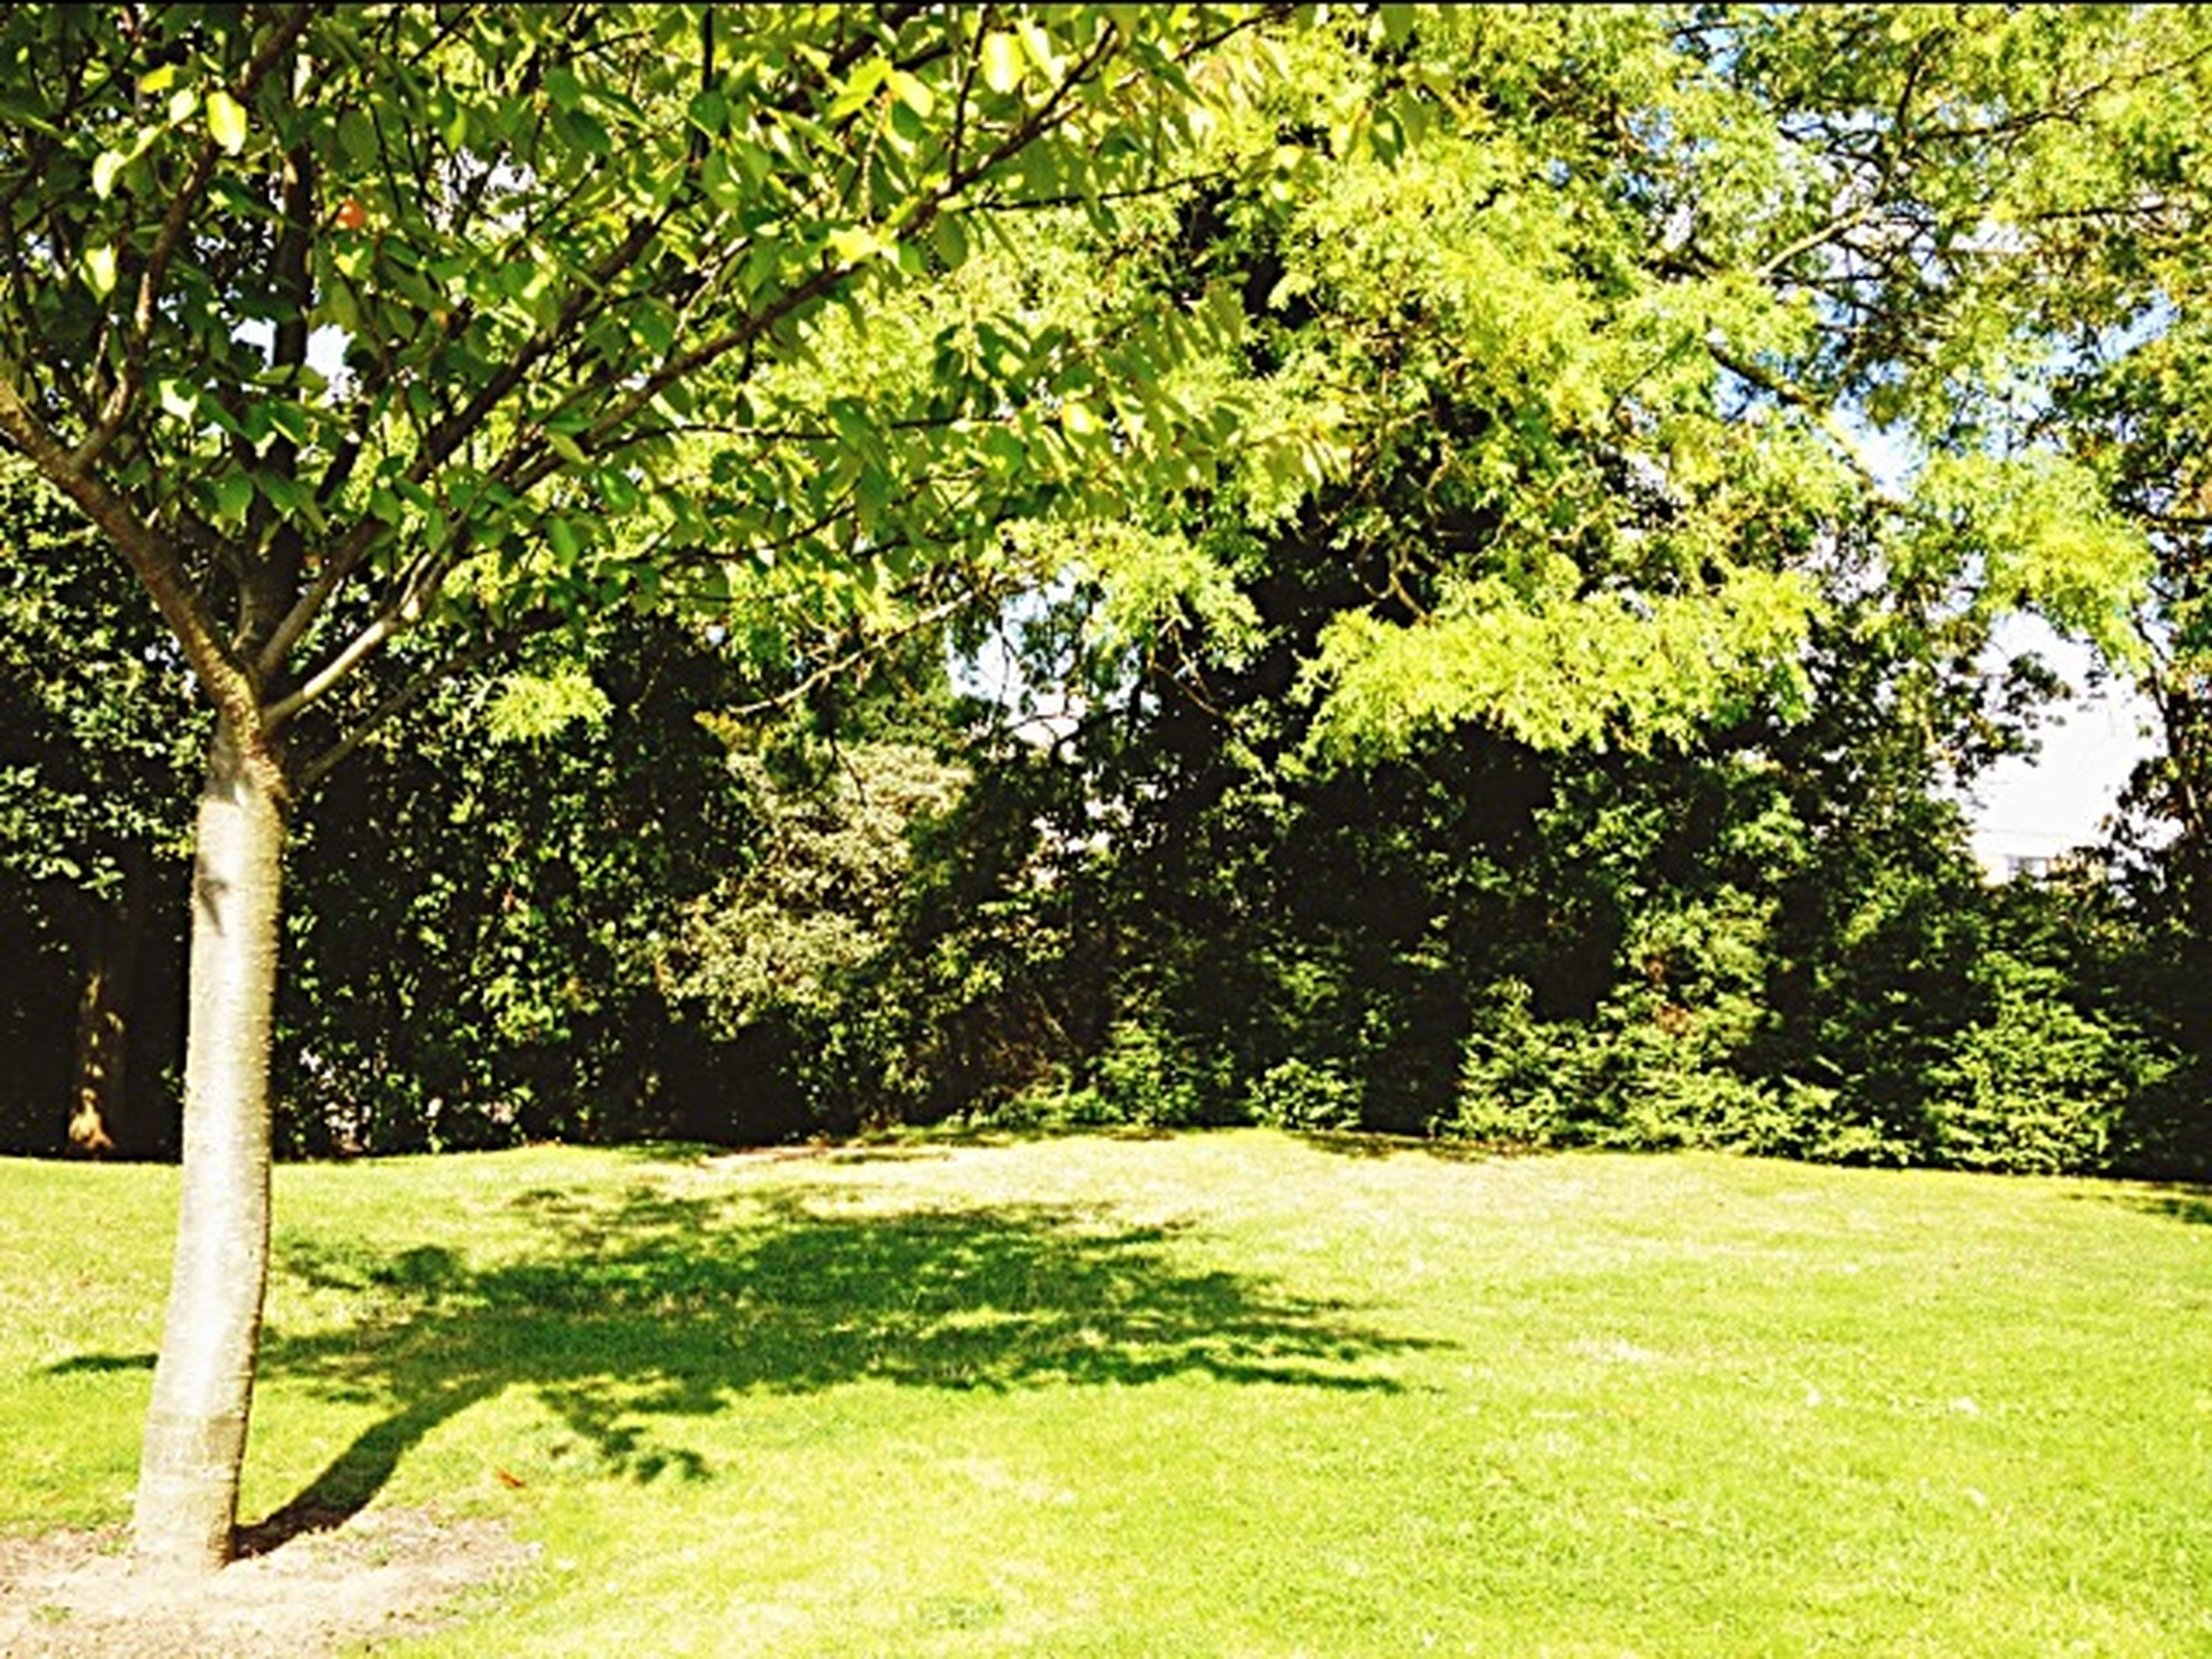 tree, green color, growth, grass, park - man made space, tranquility, branch, nature, park, tree trunk, beauty in nature, sunlight, lush foliage, tranquil scene, street light, green, scenics, day, outdoors, shadow